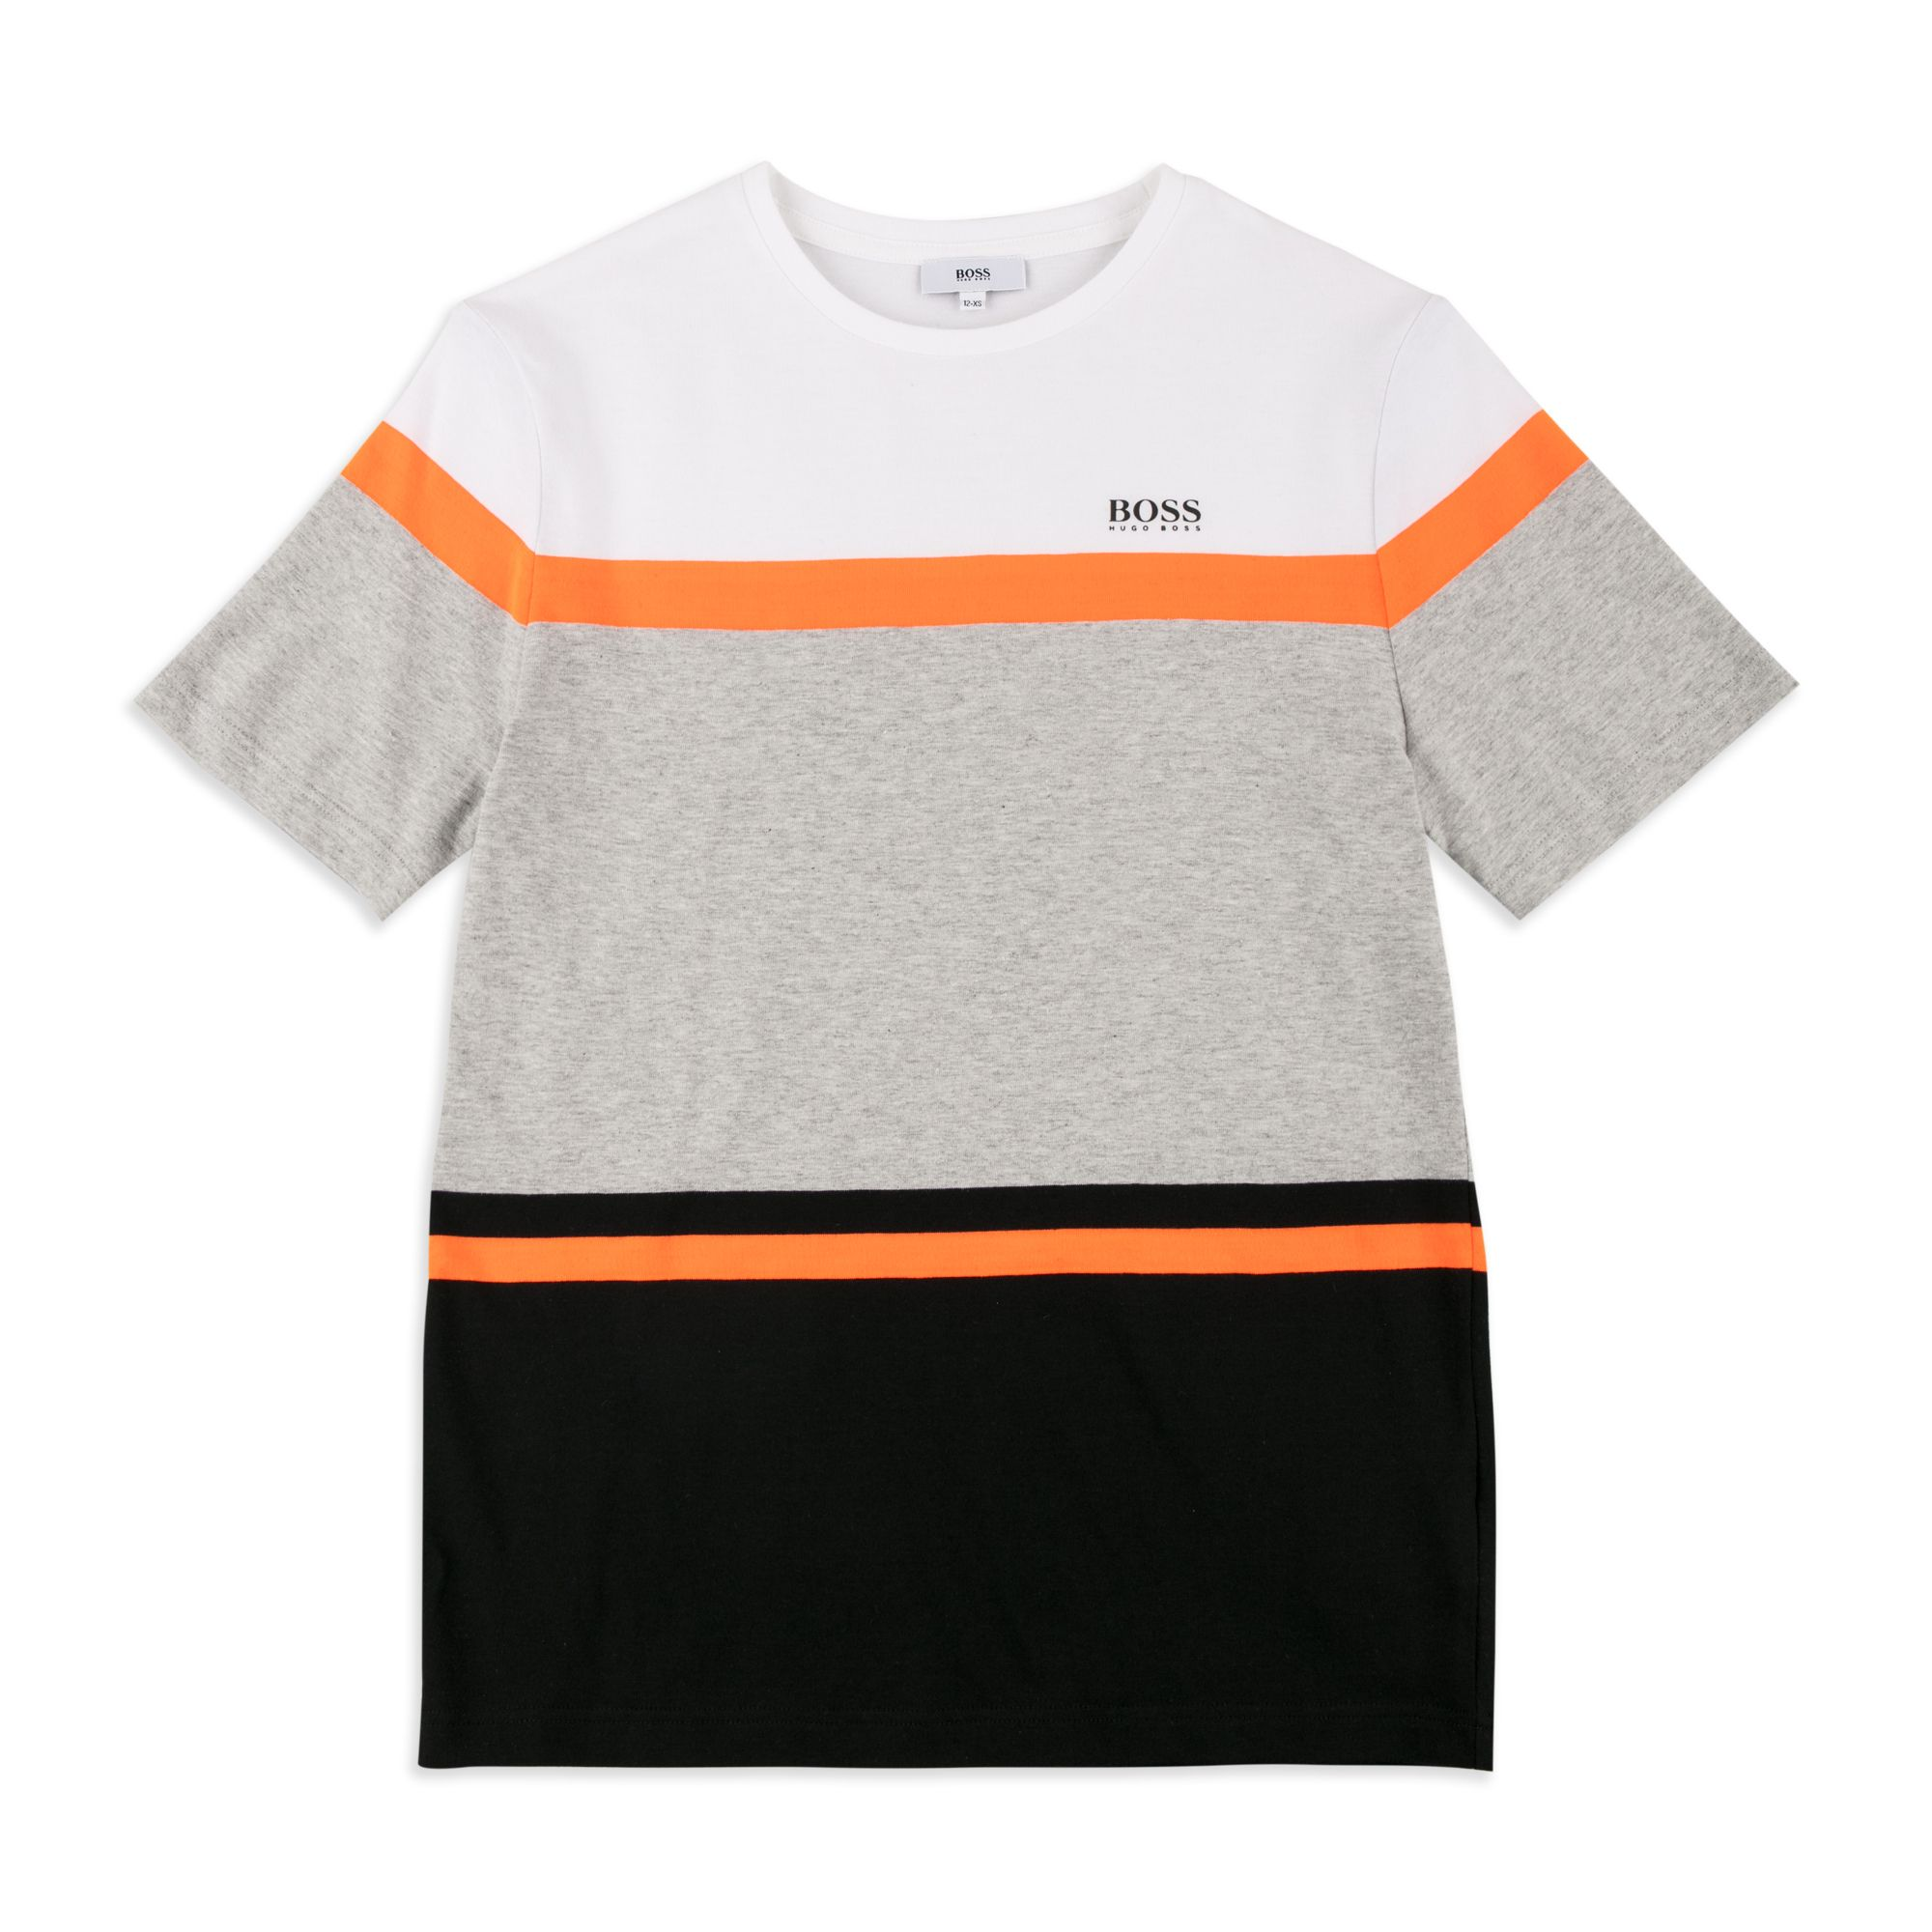 662e1a3c BOSS KIDS Boys Neon Colour-Block T-Shirt - Multi Boys short sleeve t-shirt  • Soft cotton jersey • Round neckline • Neon colour-block design • Contrast  logo ...